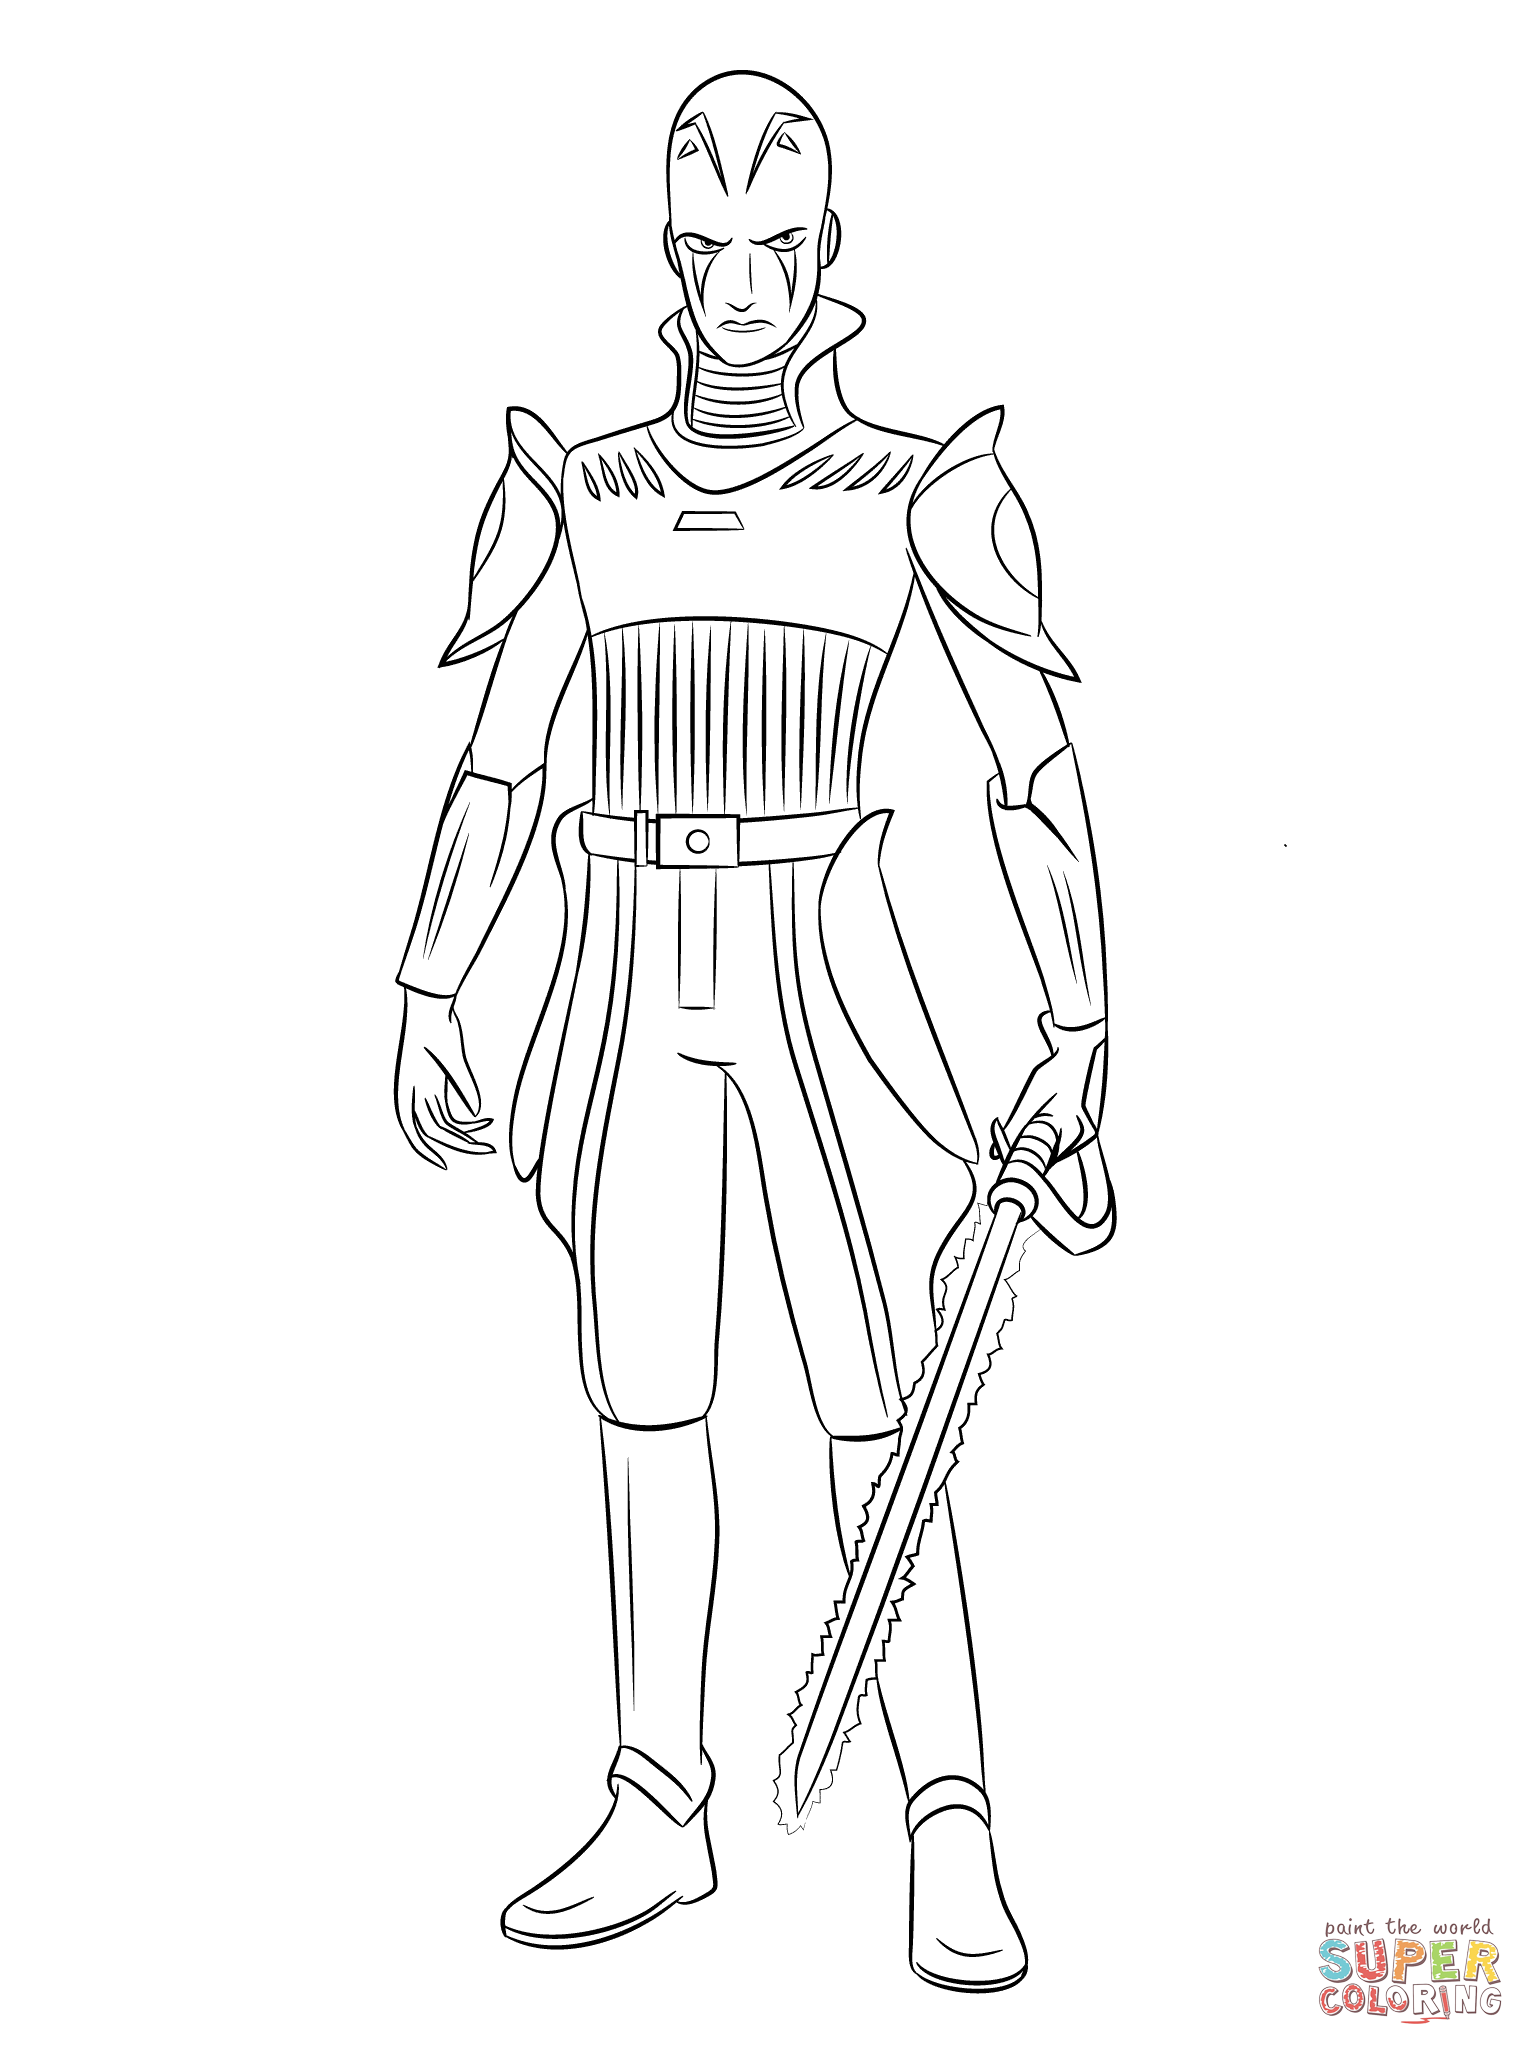 Star Wars Rebels The Inquisitor Coloring Page Free Printable